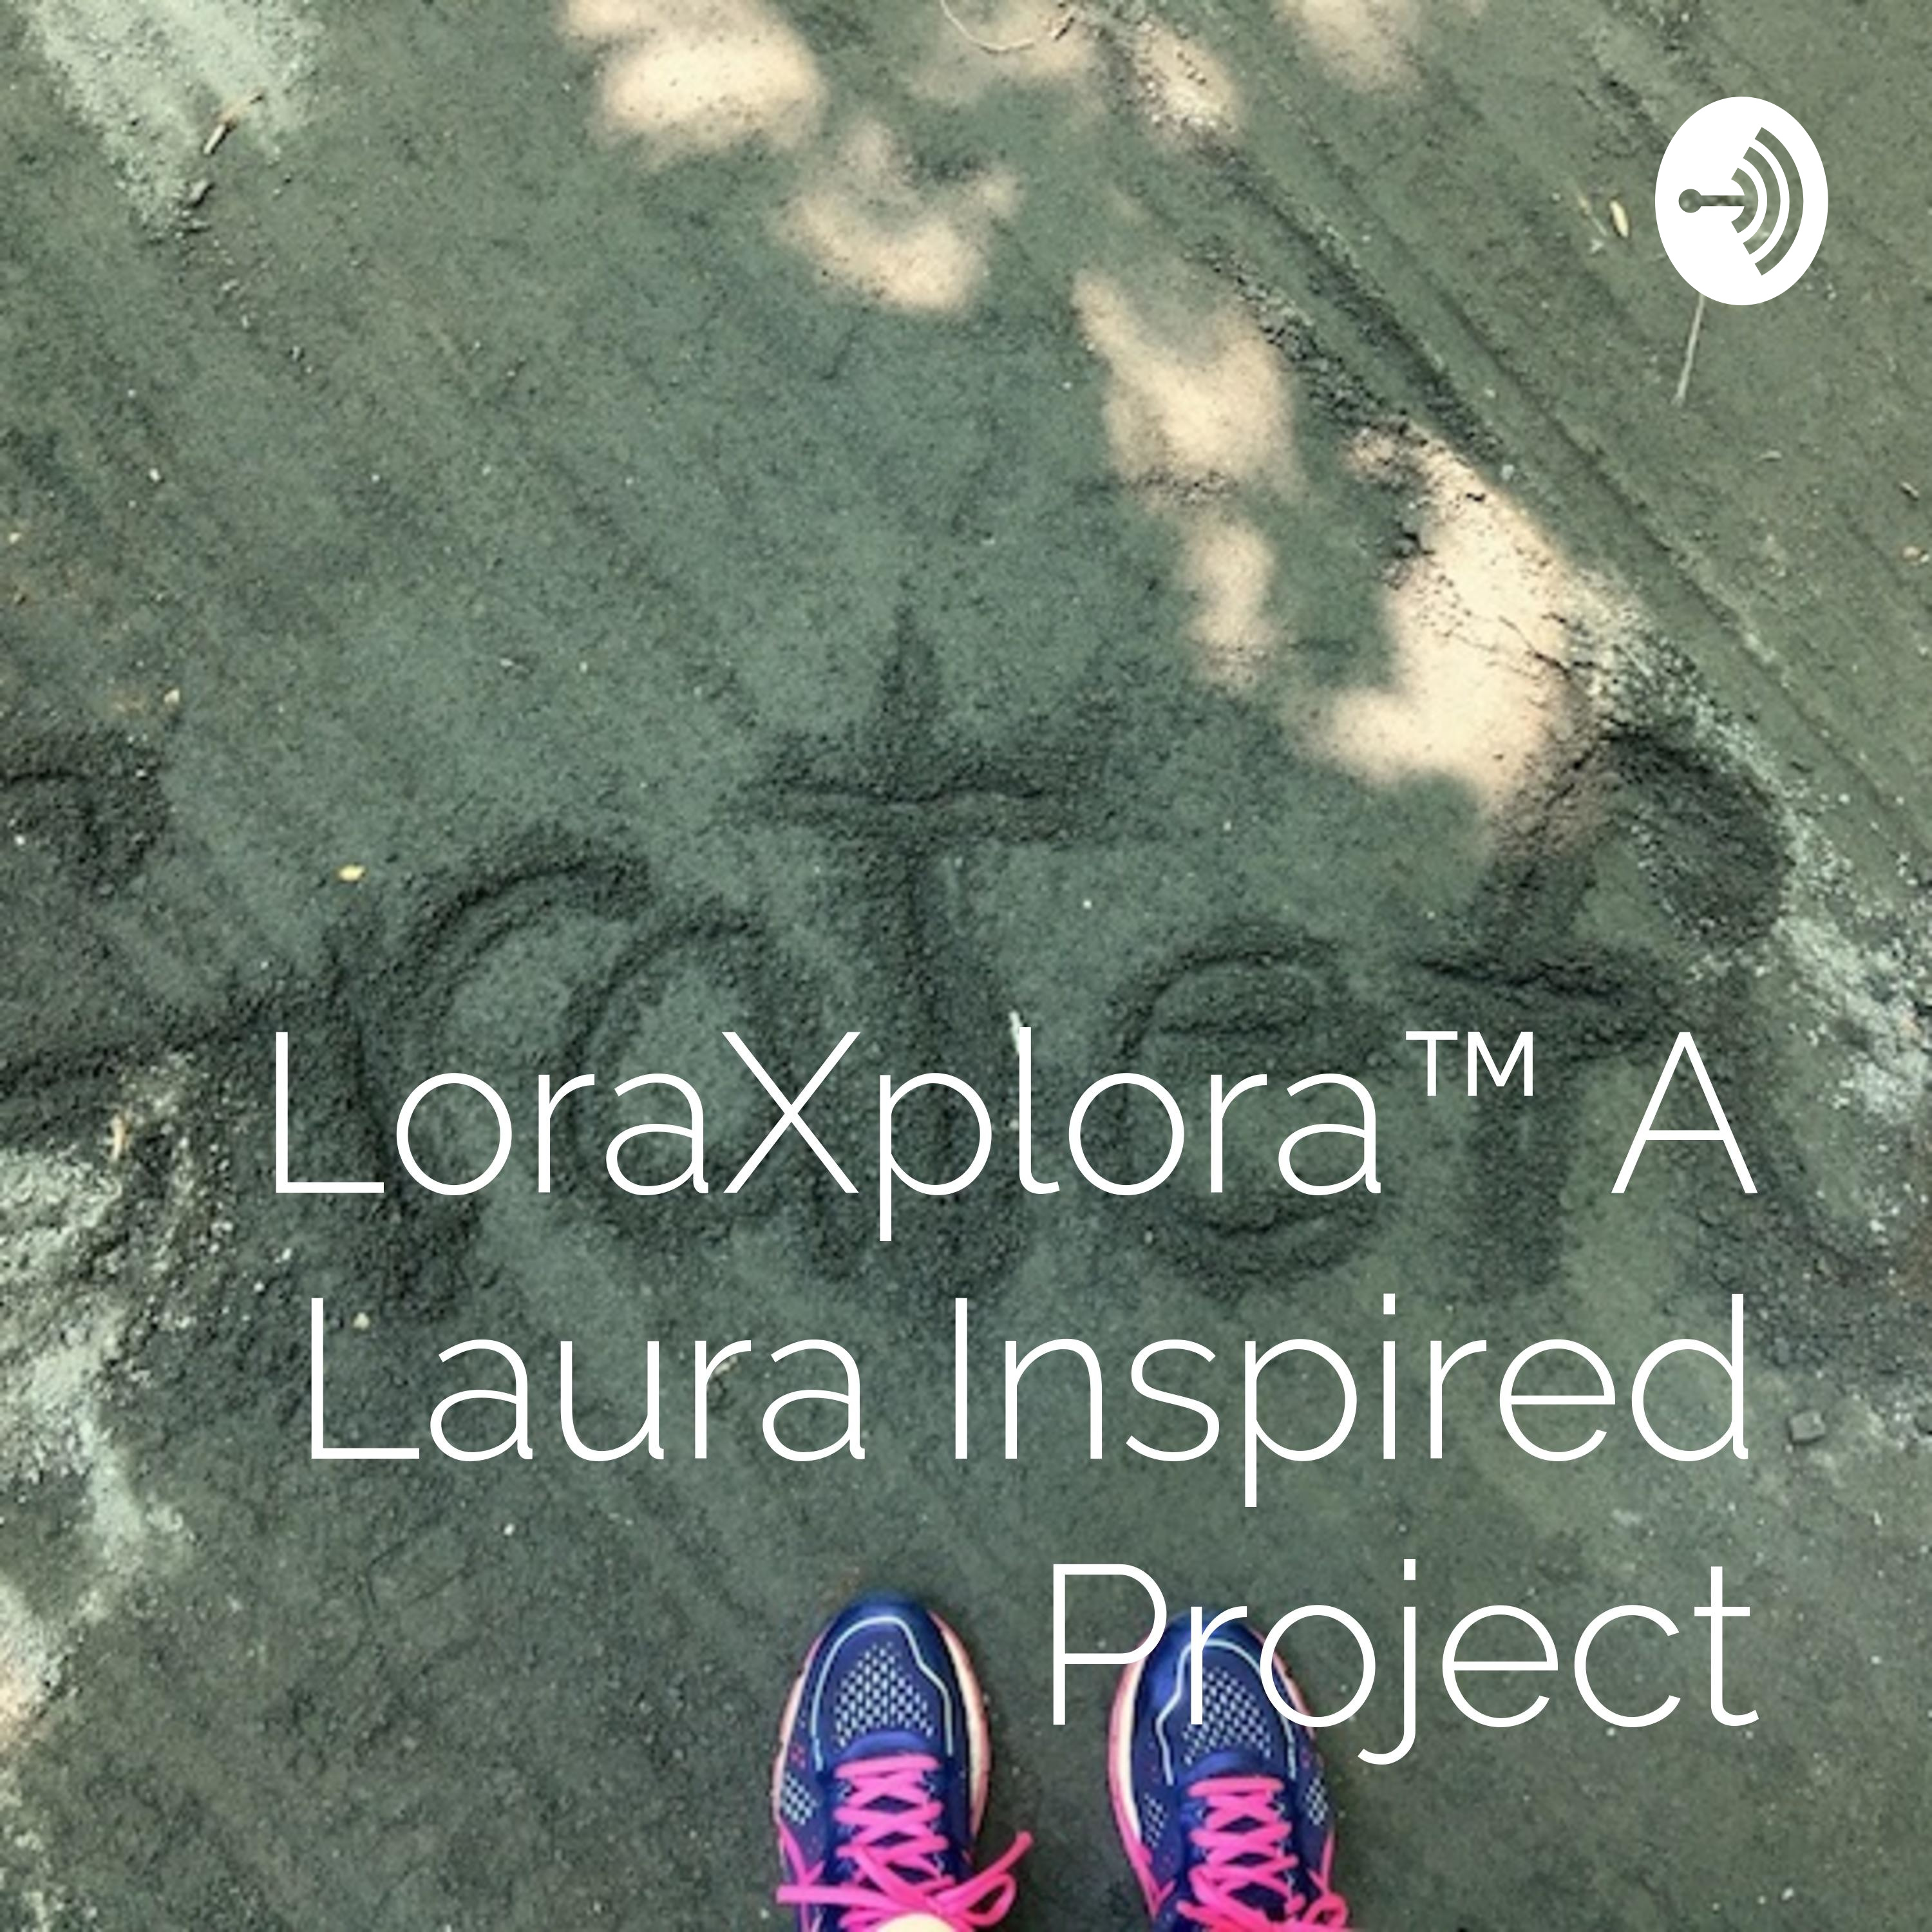 LoraXplora™ The Podcast, a LauraInspiredProject